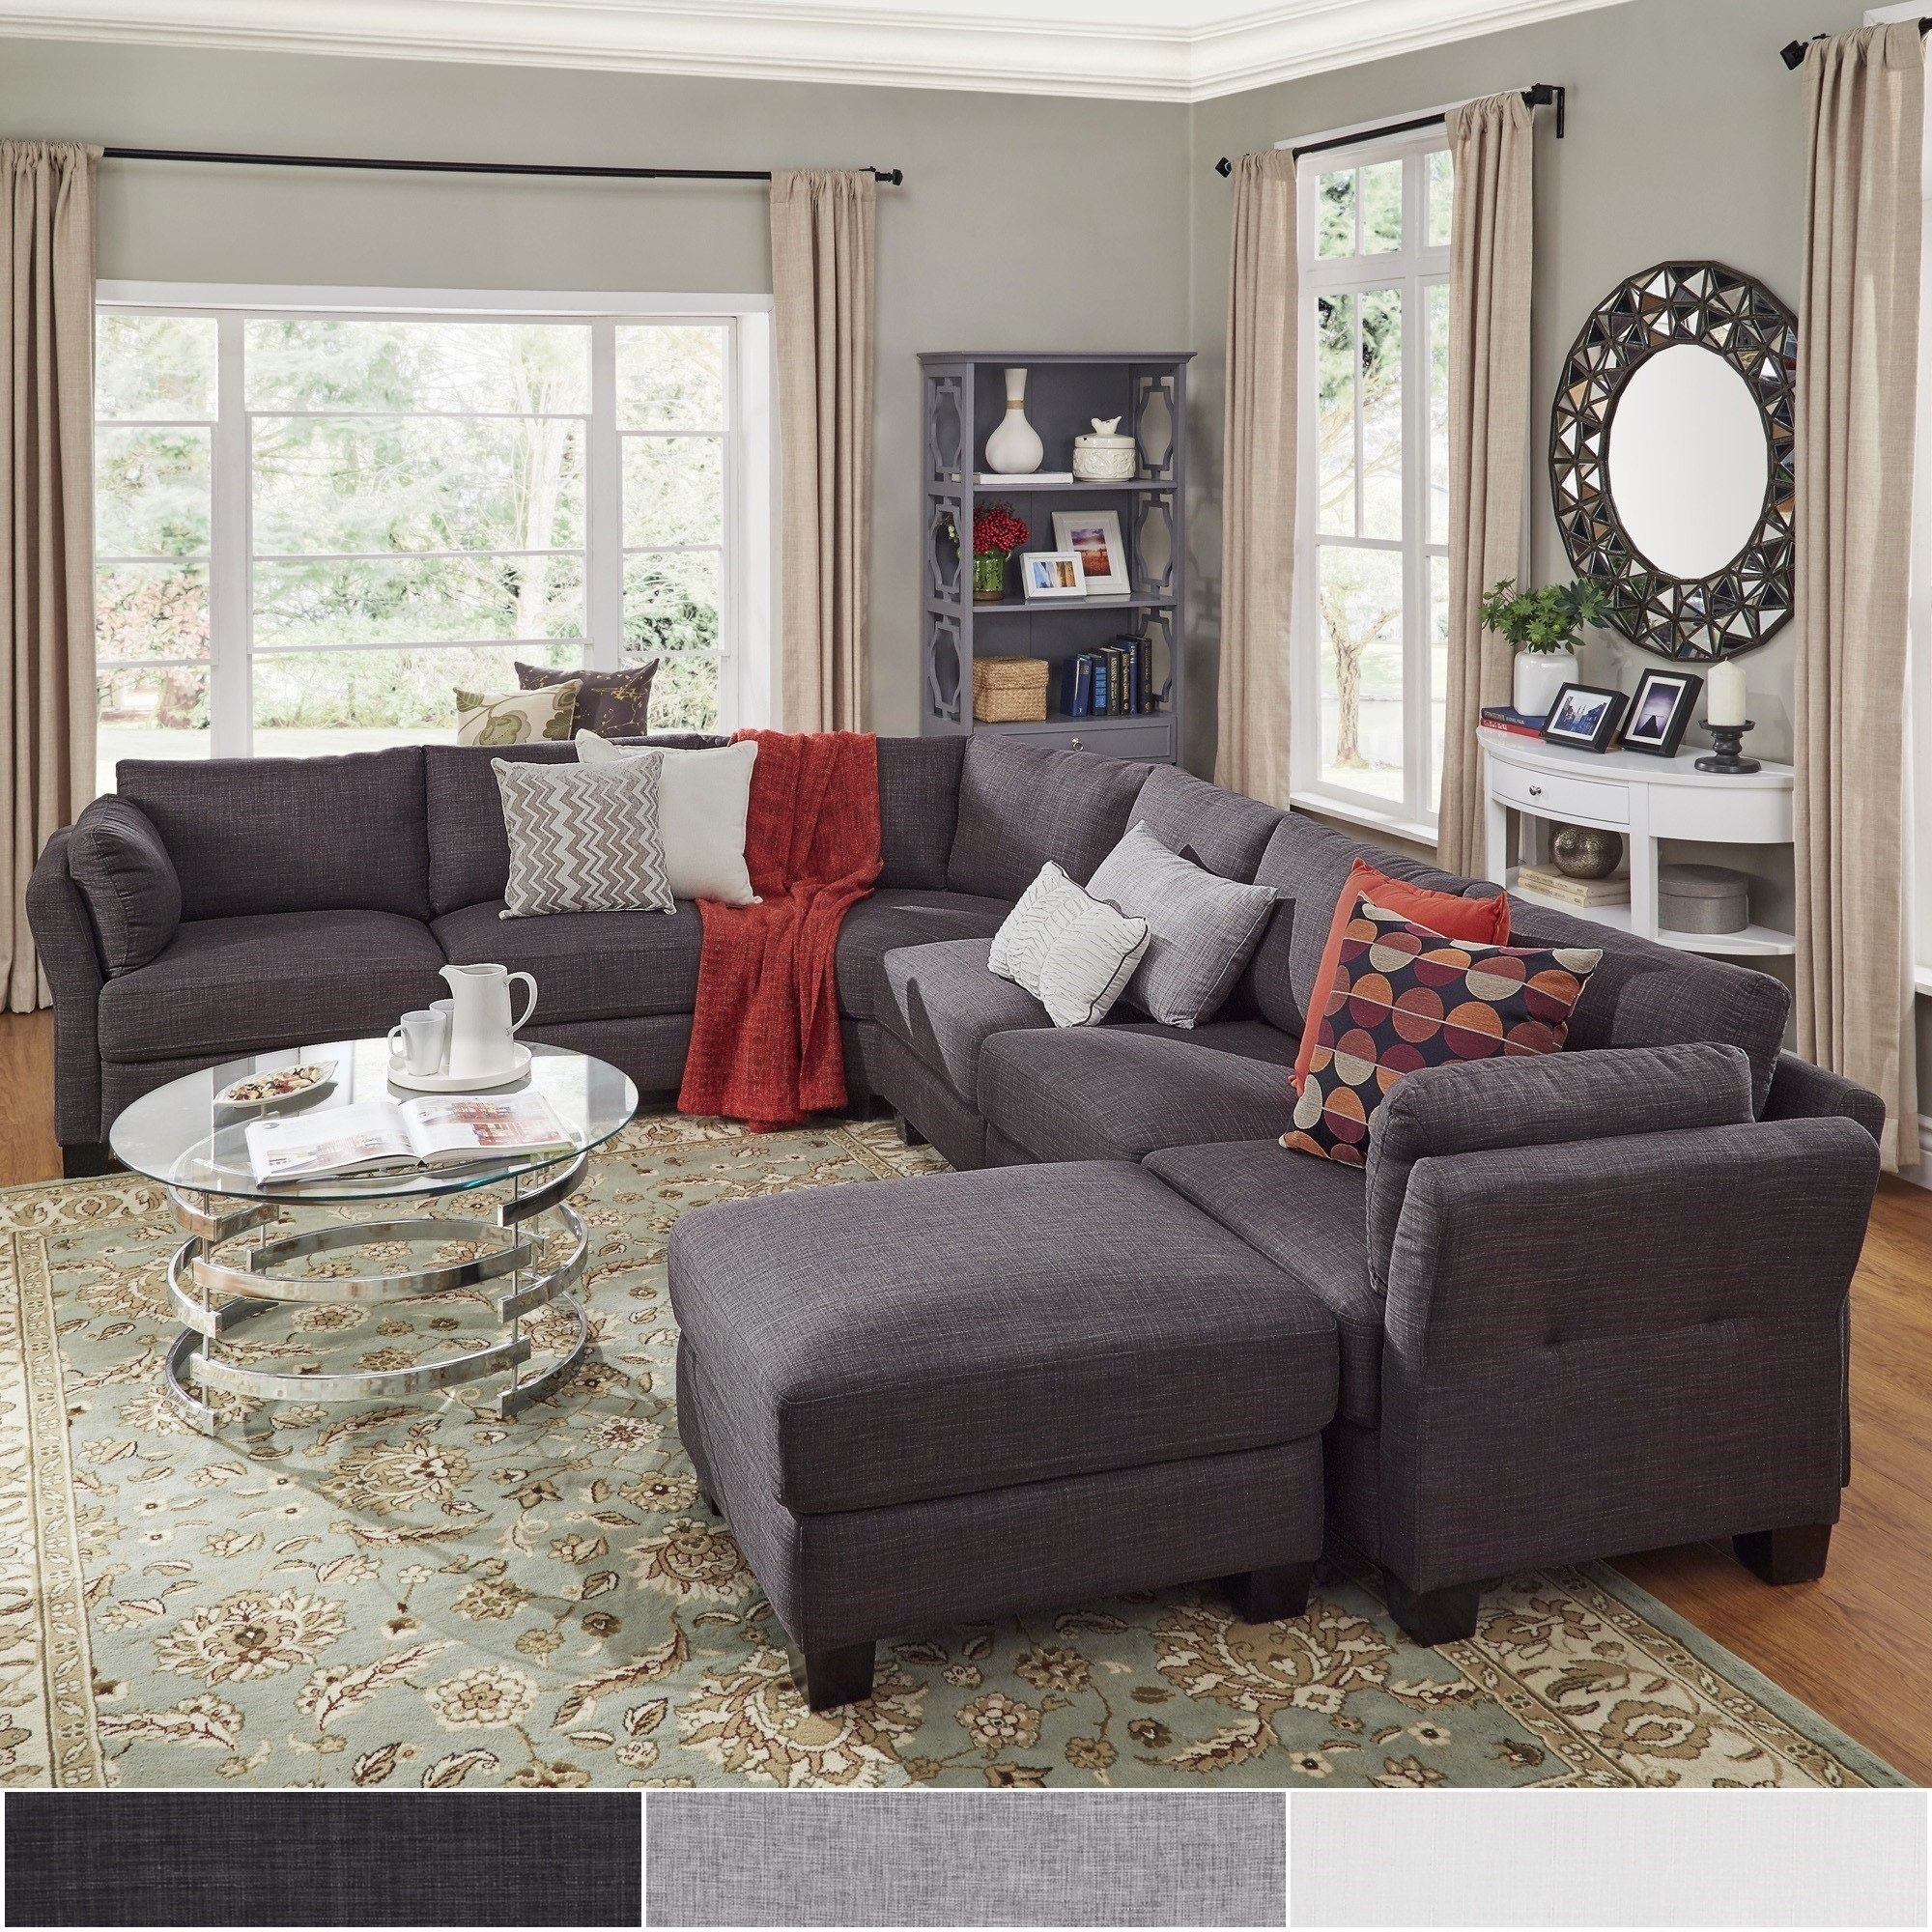 Elize U-Shaped 7-Seat Linen Fabric Modular Sectional Seating by iNSPIRE Q  Bold by iNSPIRE Q